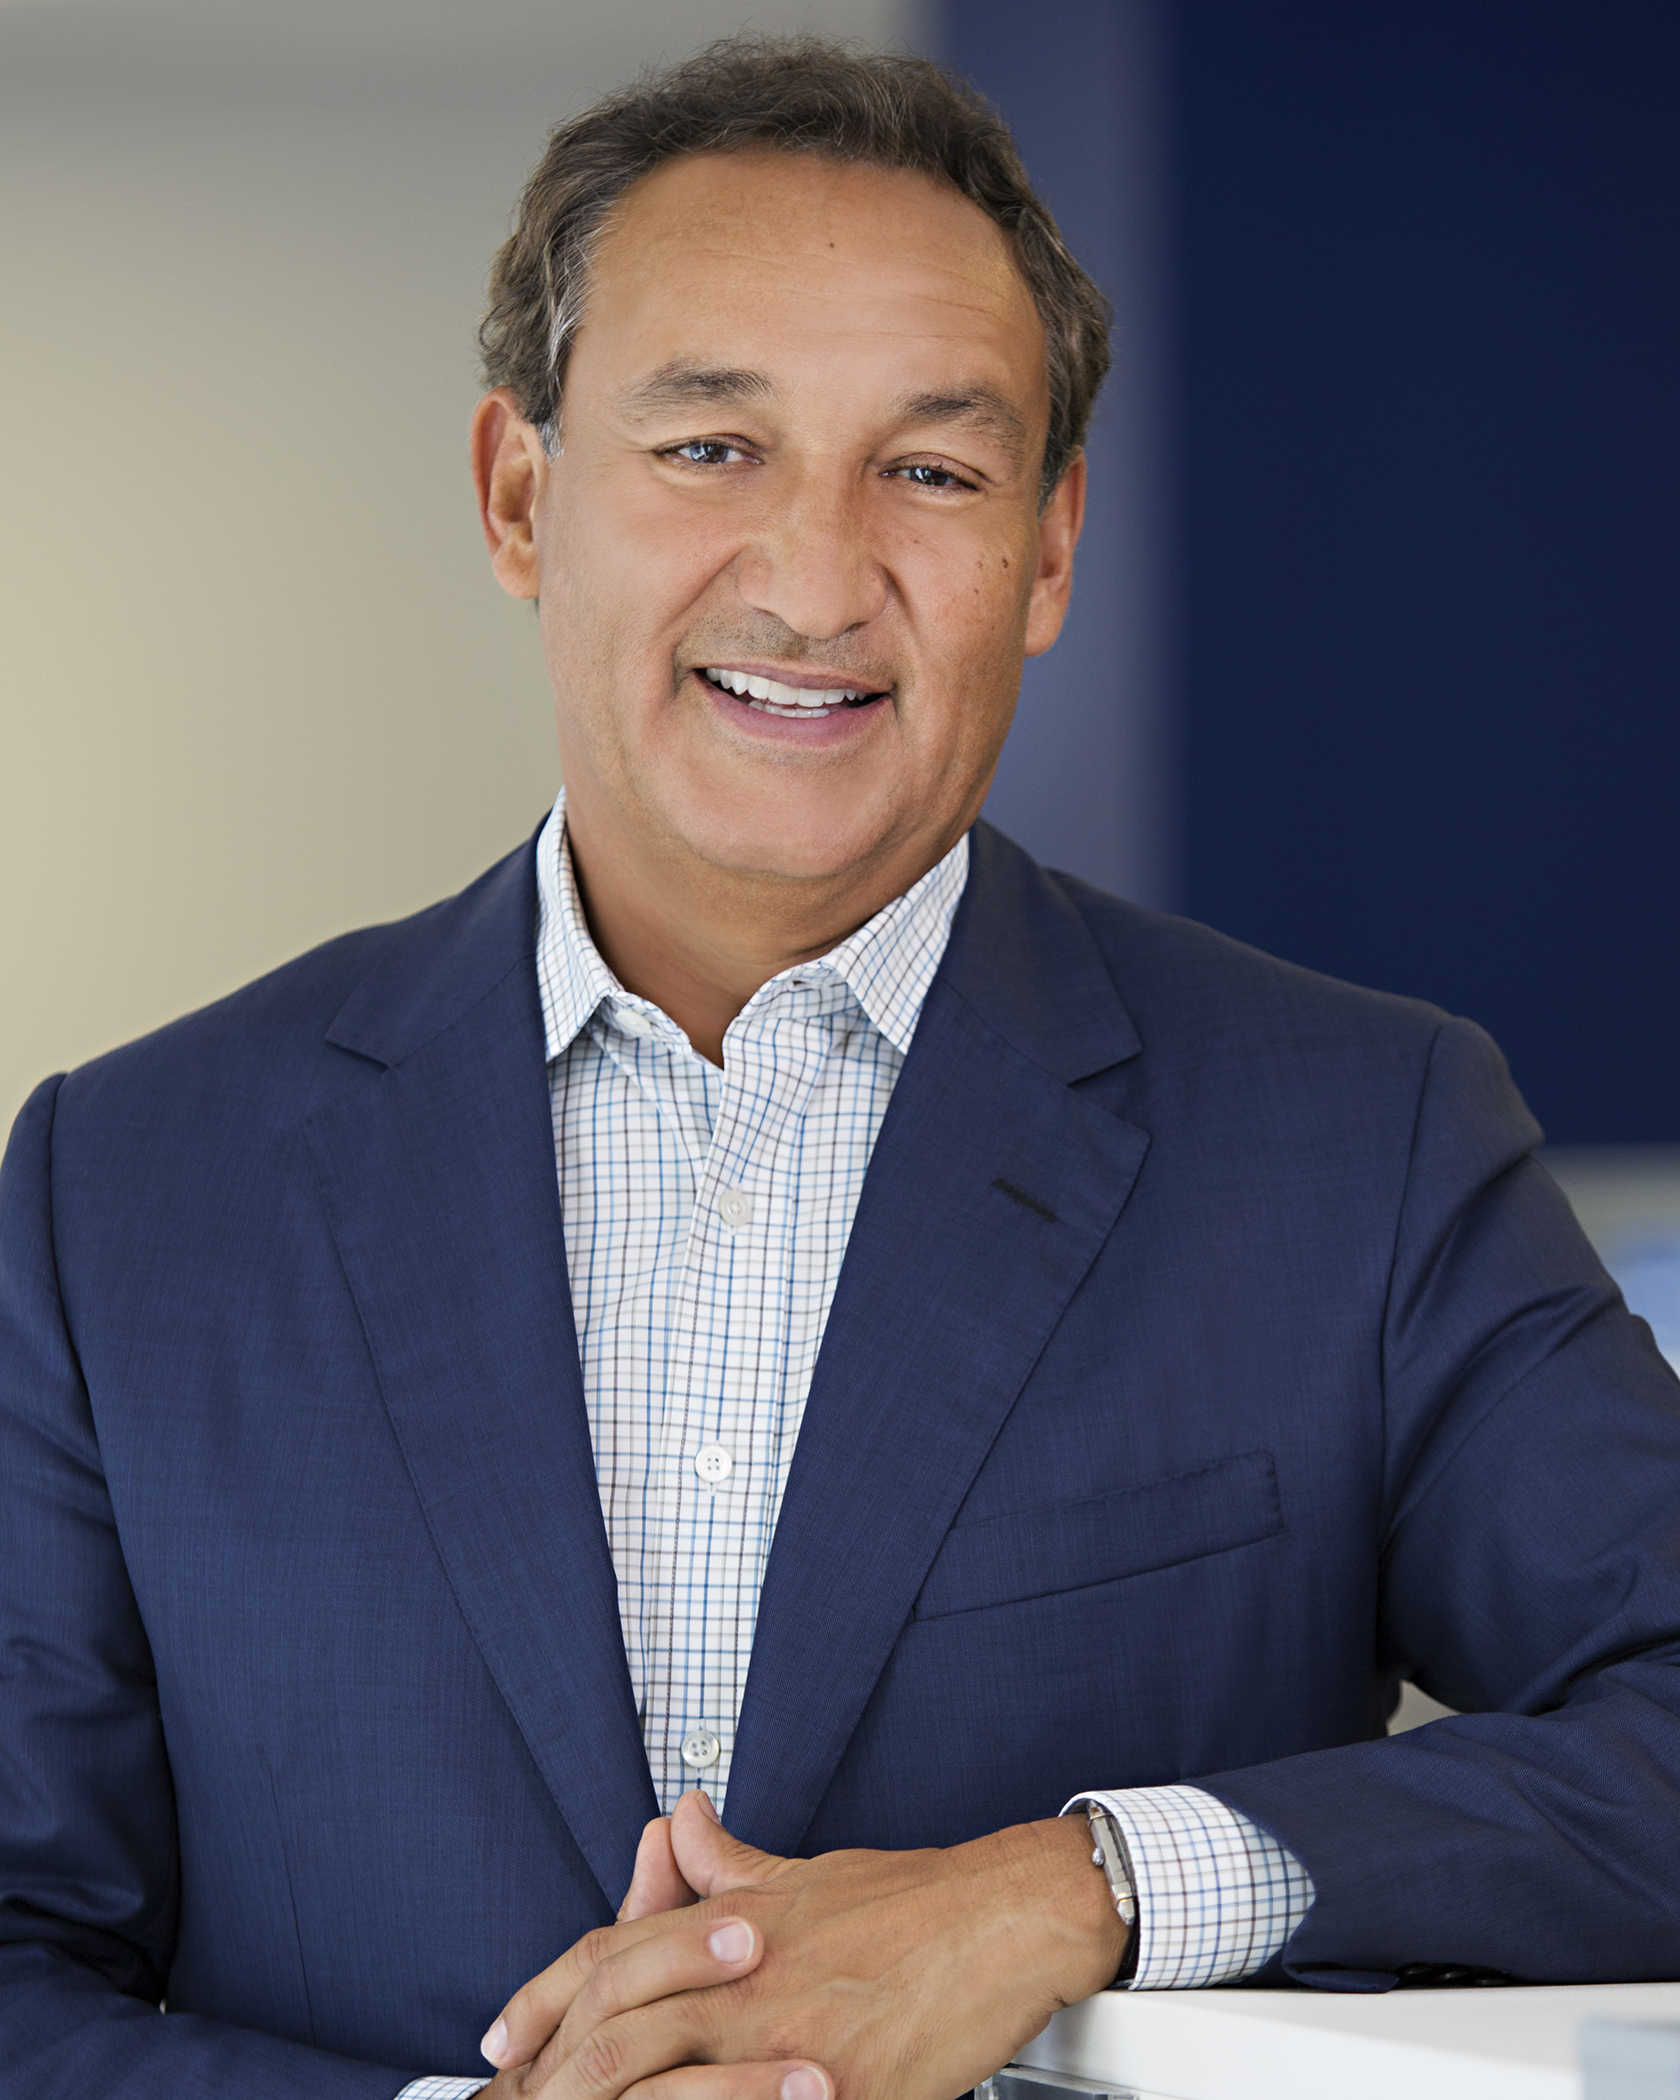 Oscar Munoz, Chief Executive Officer, United Airlines